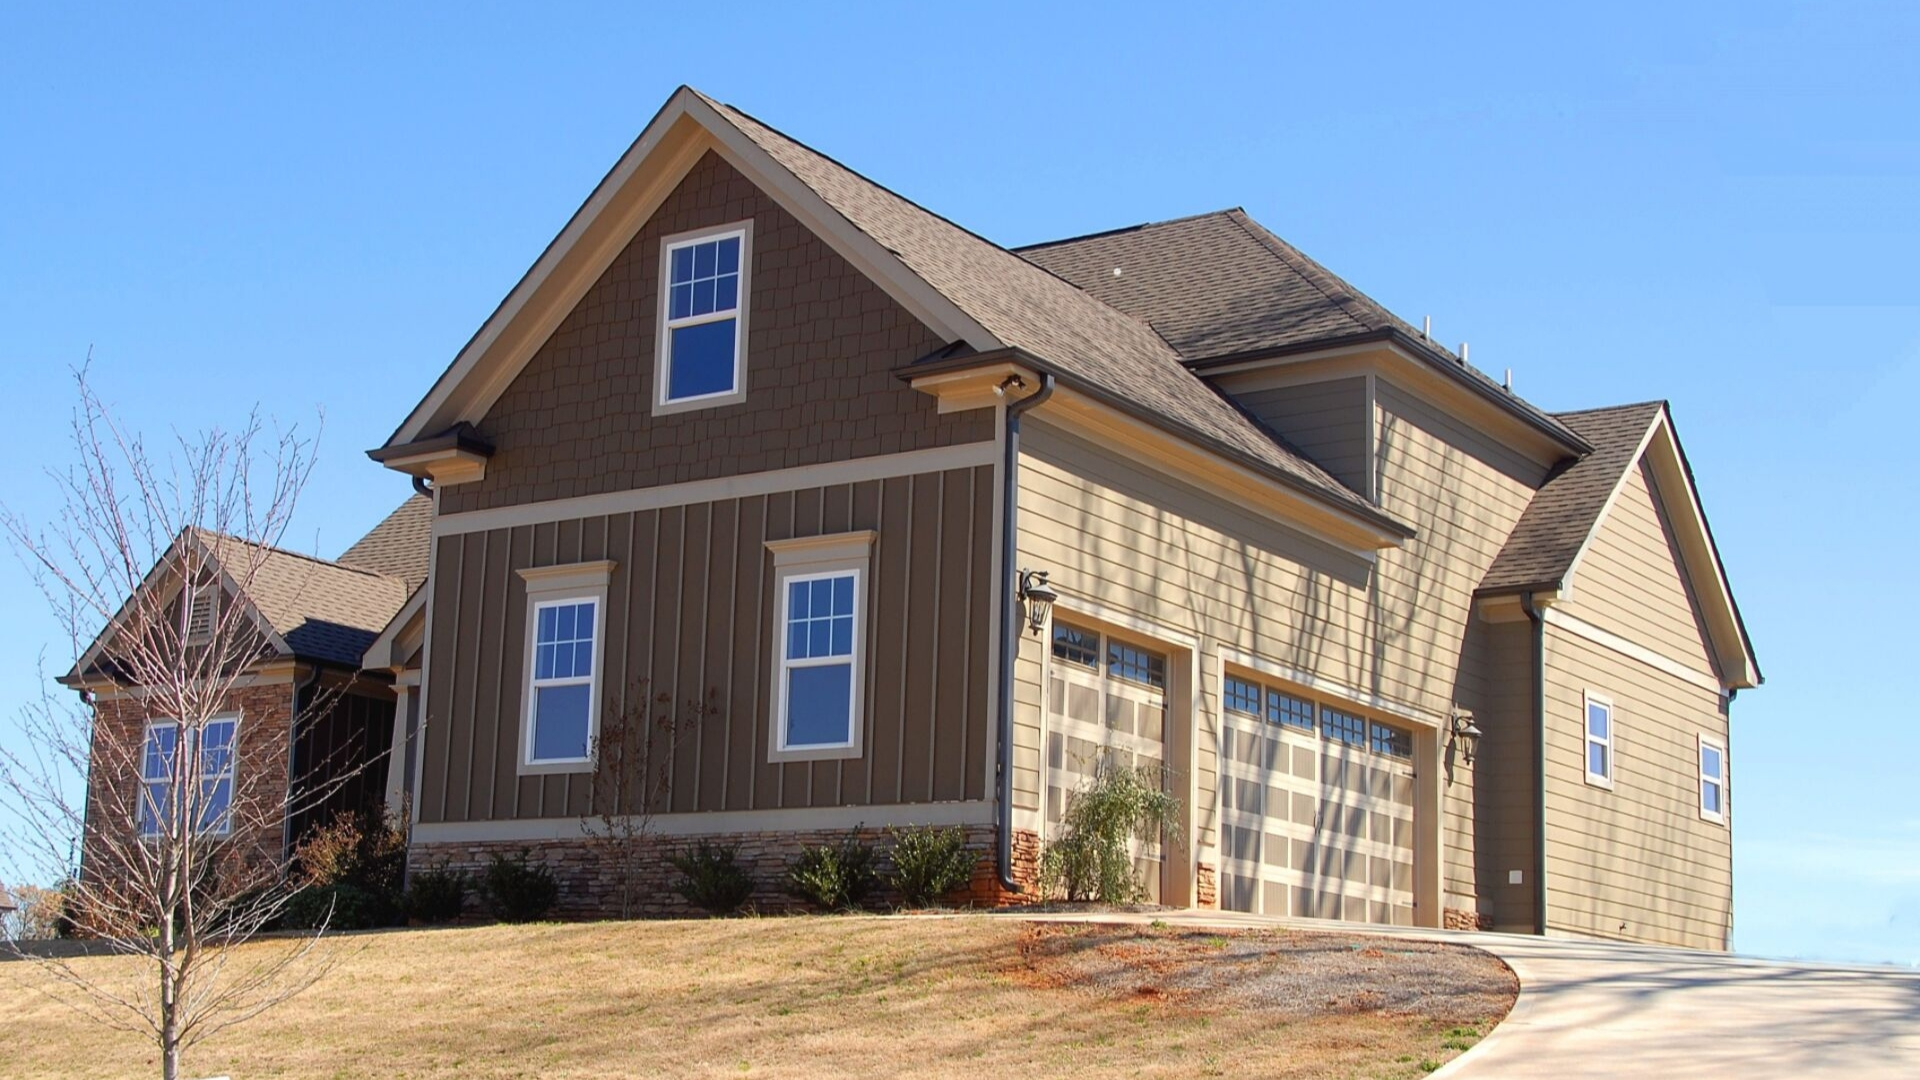 front entrance and garage door renovation improves curb appeal and largest return on investment